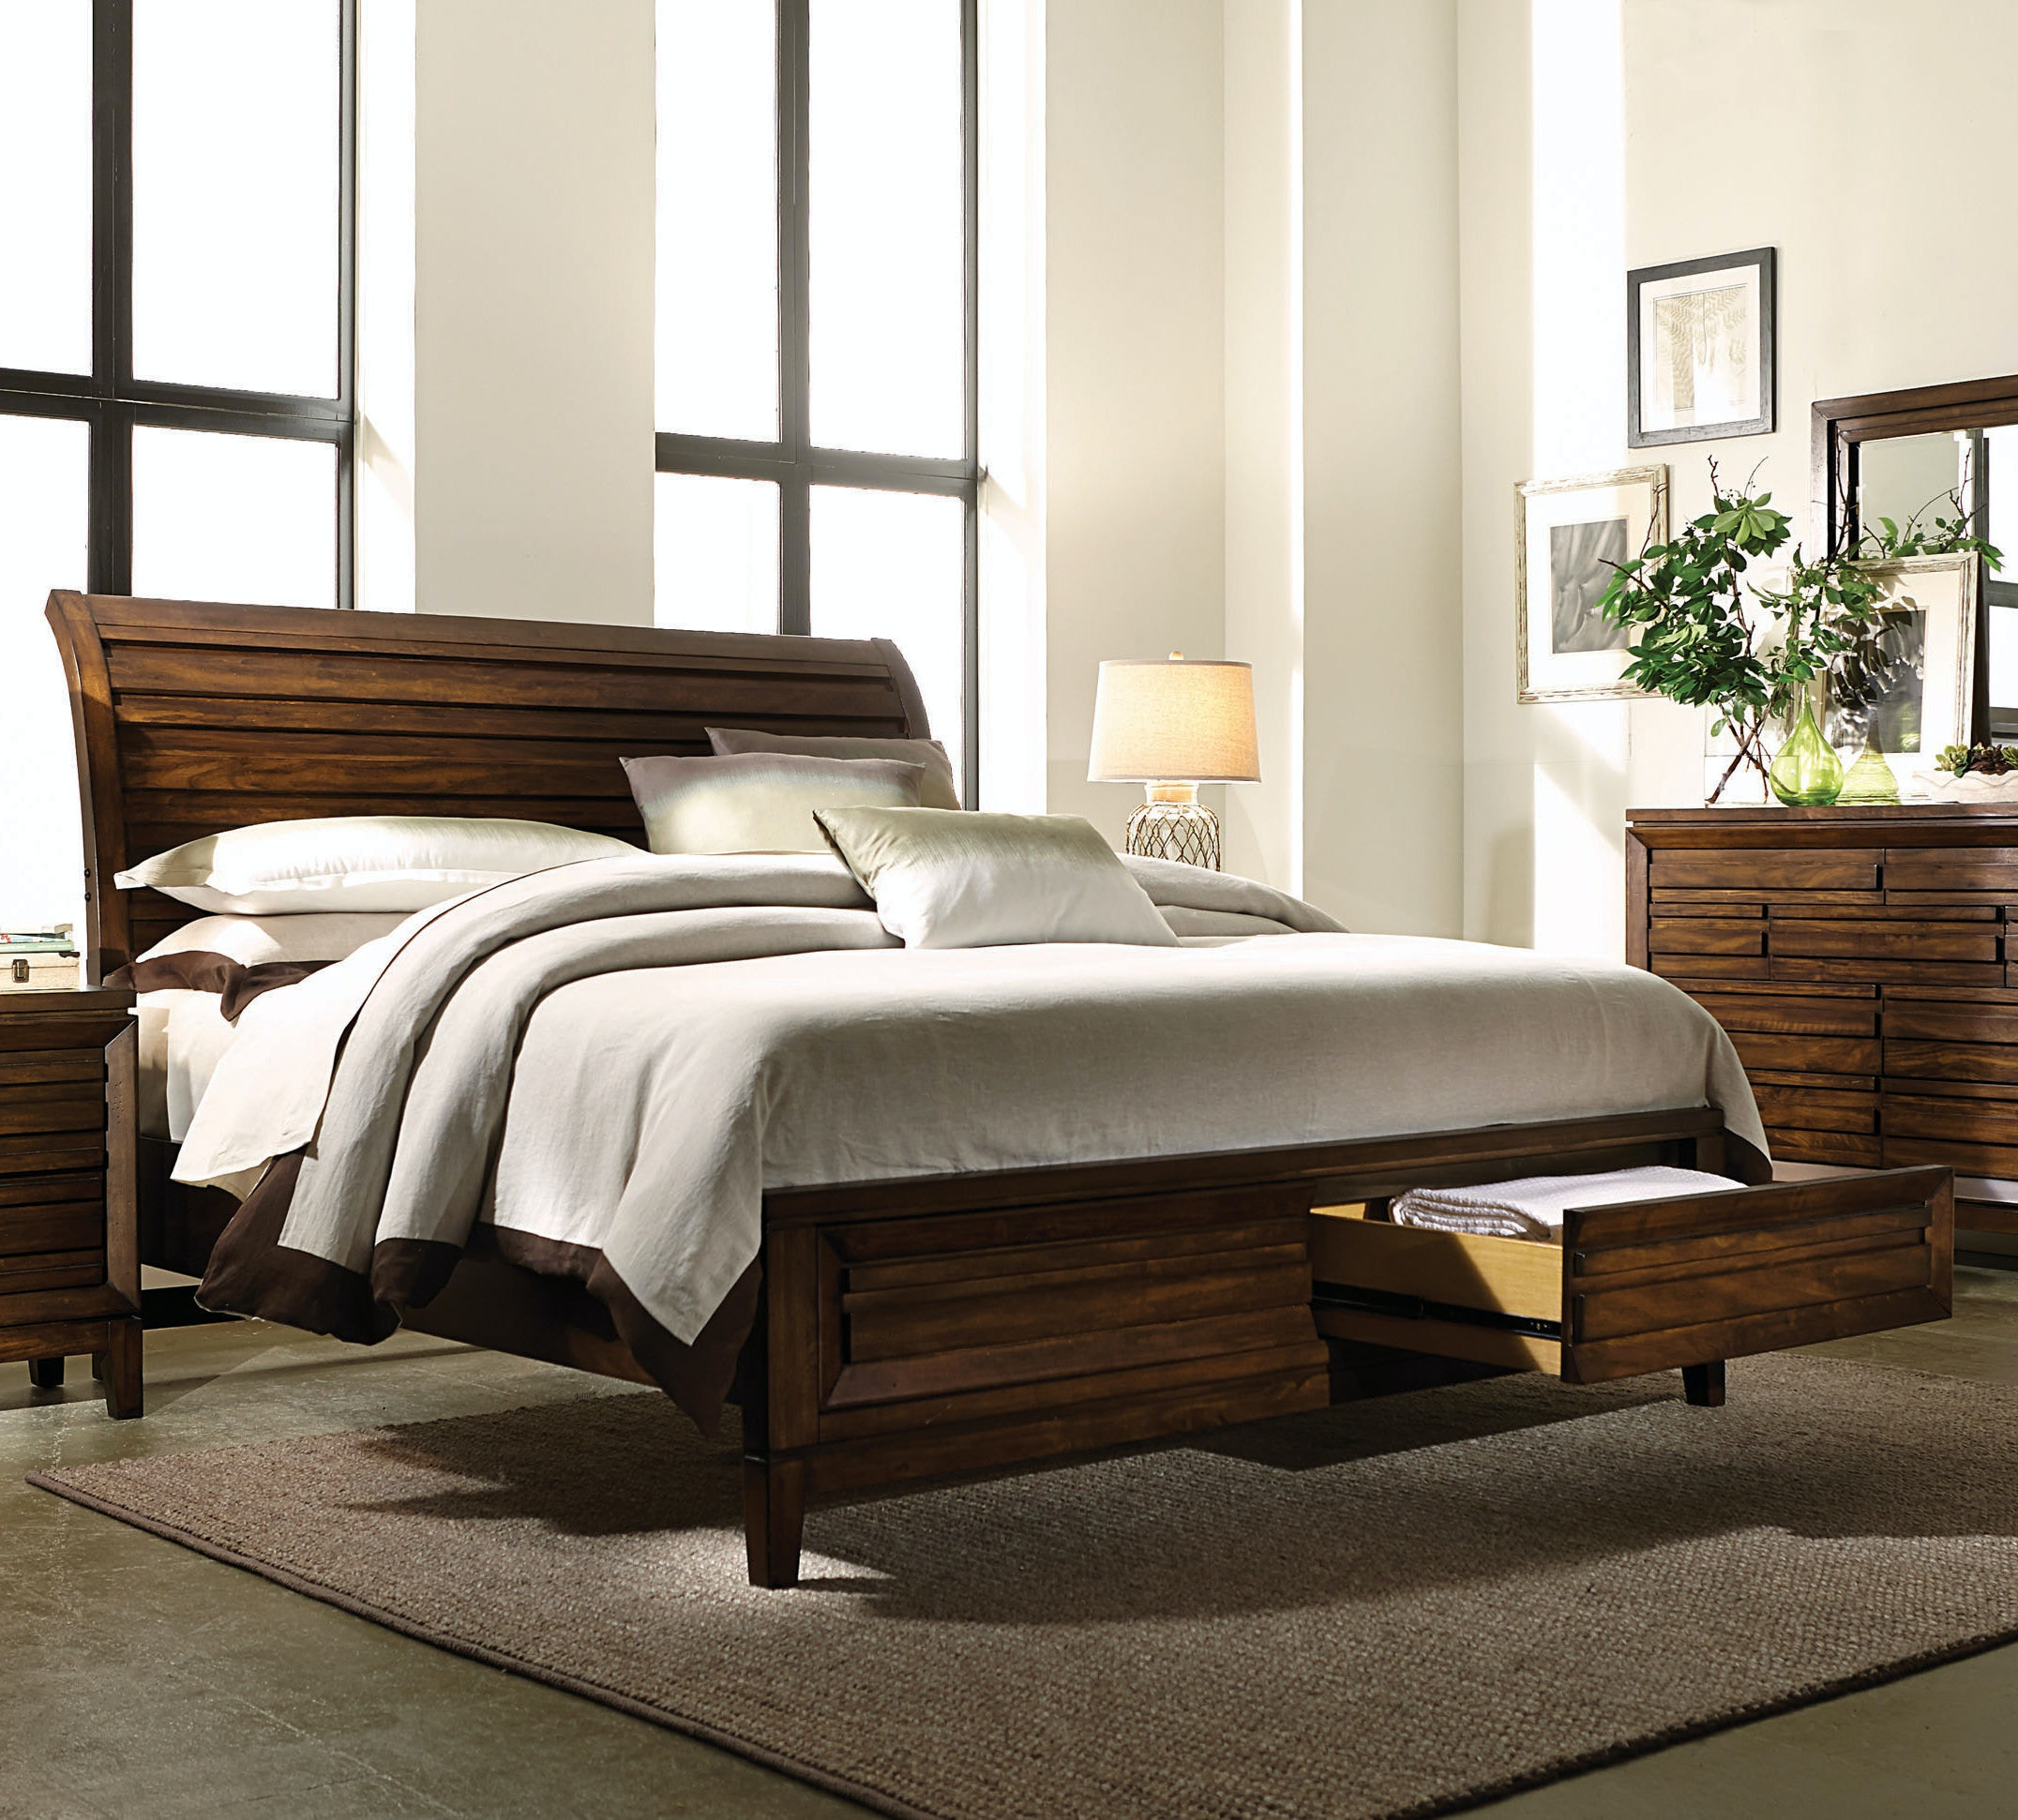 walnut park king sleigh bed with footboard storage kt34629 - King Sleigh Bed